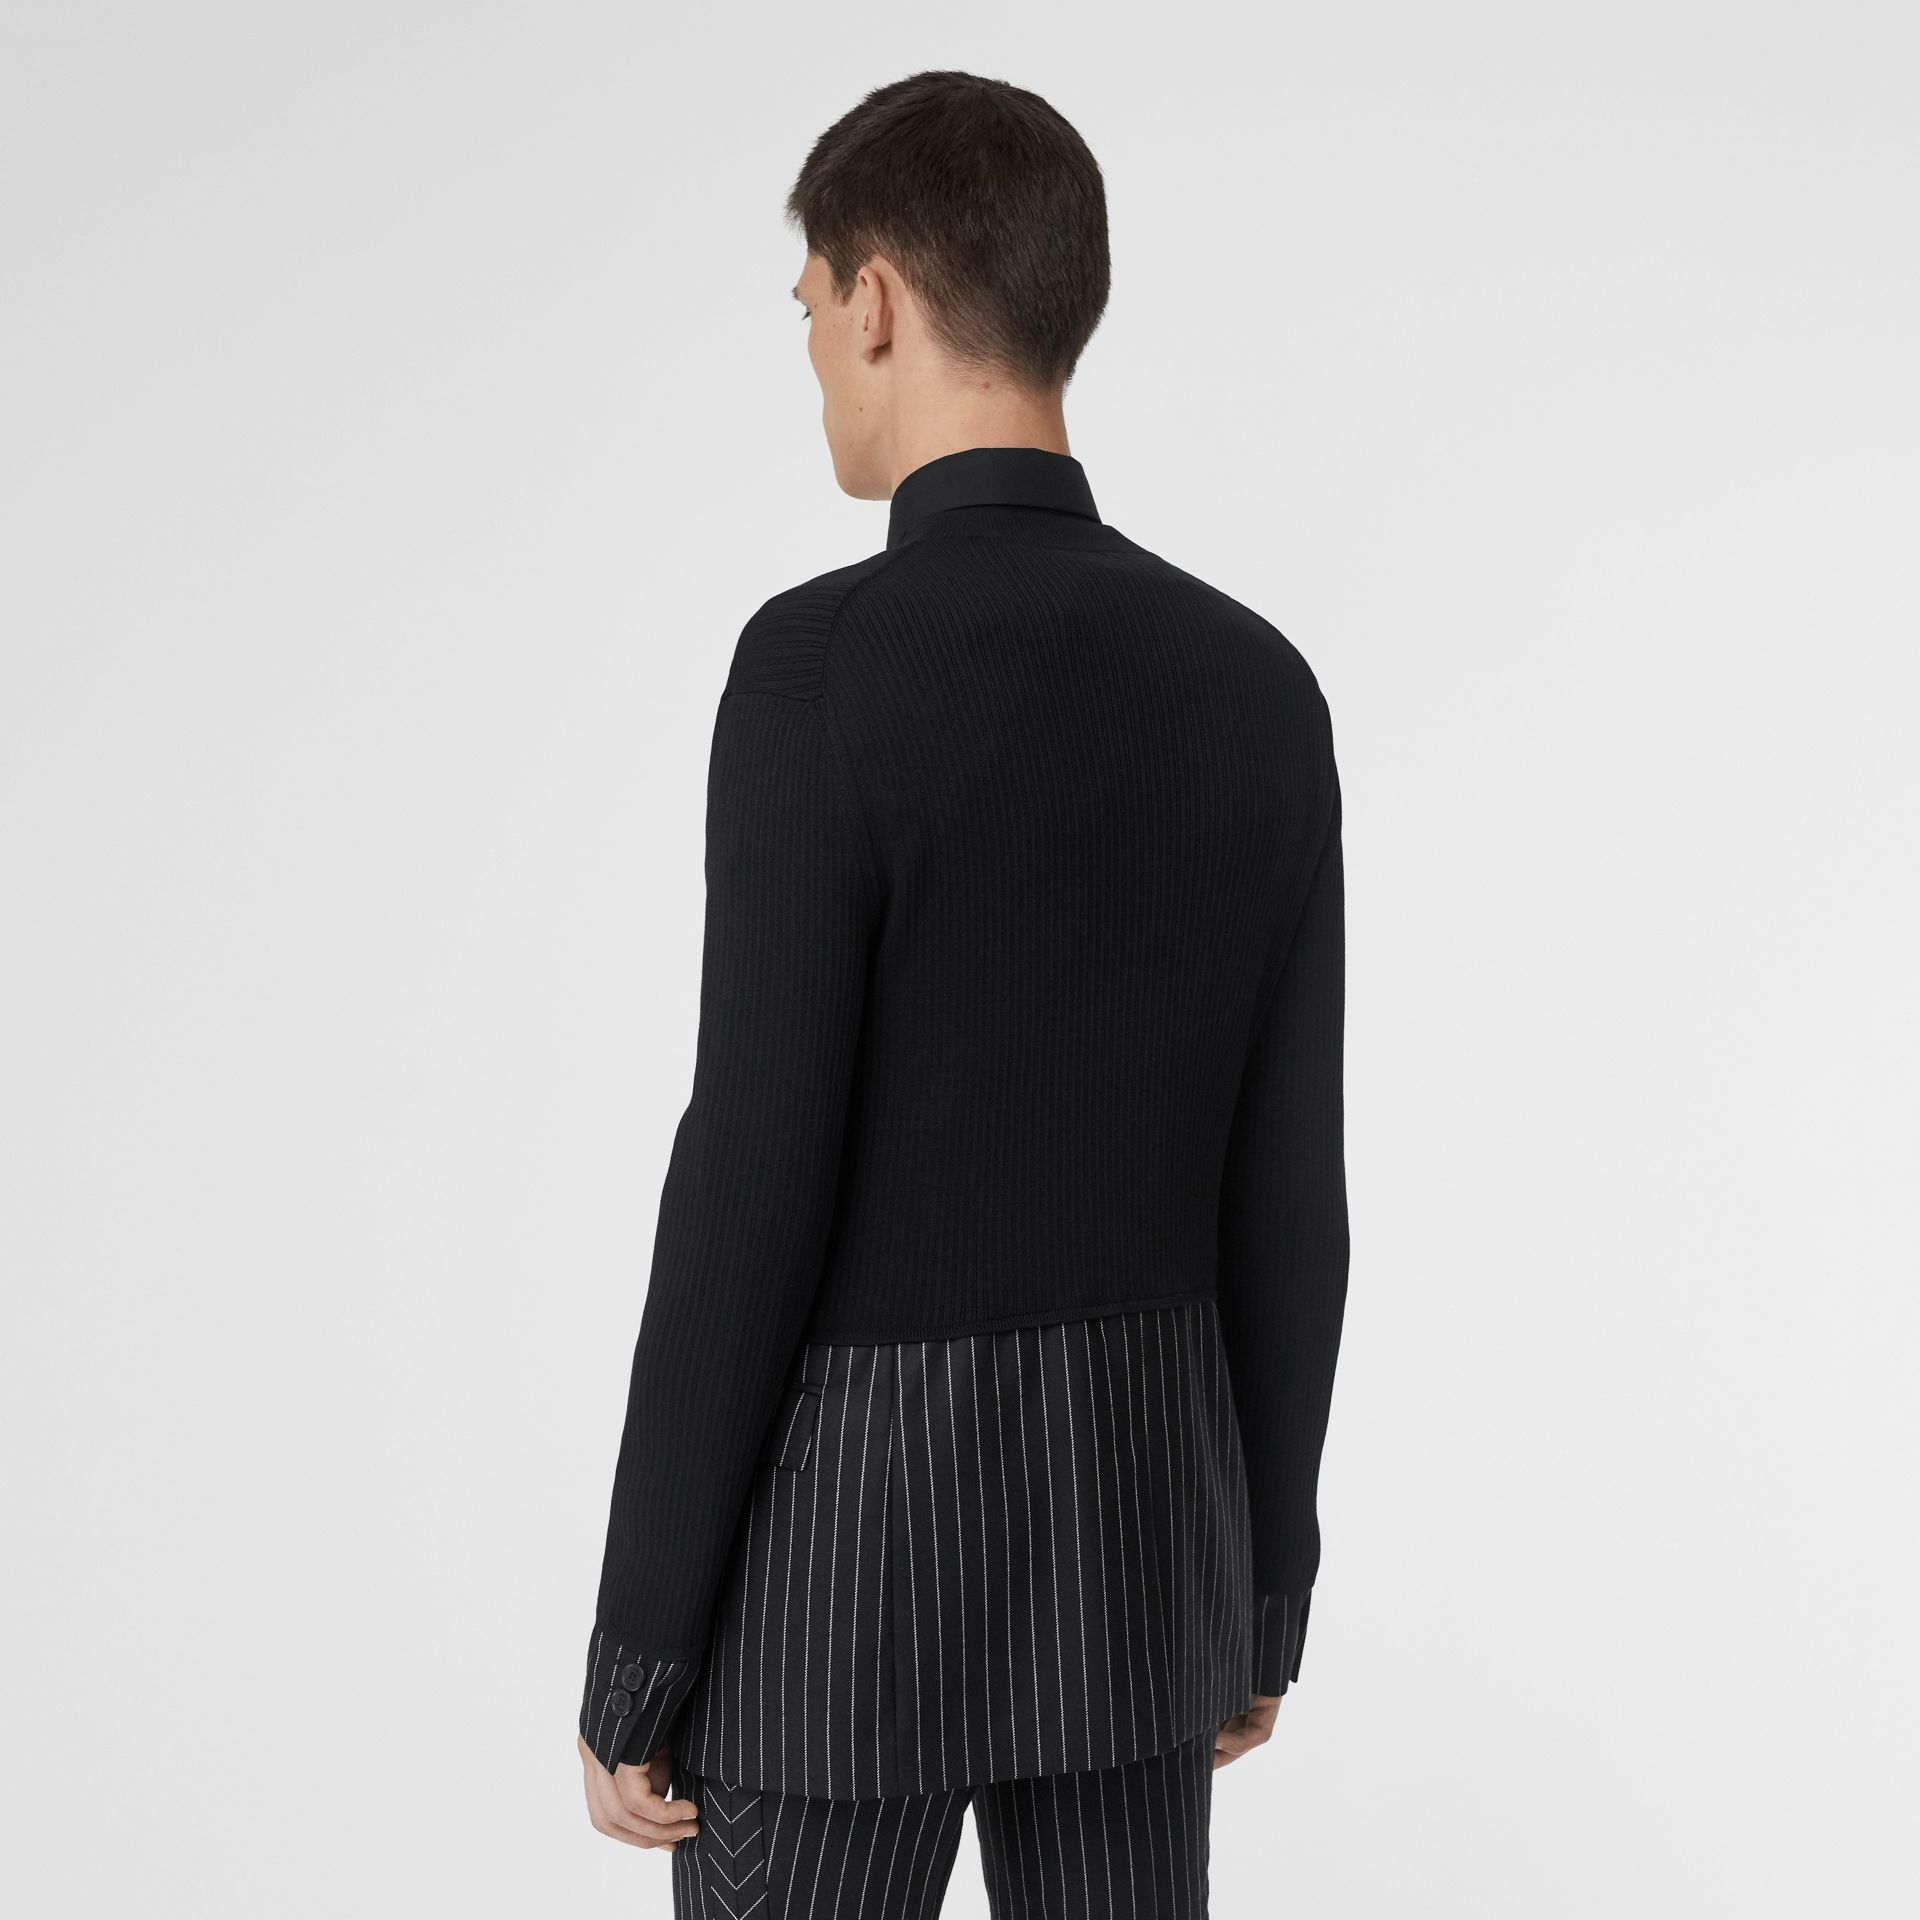 Tailored Panel Rib Knit Silk Blend Sweater in Black | Burberry Singapore - gallery image 2